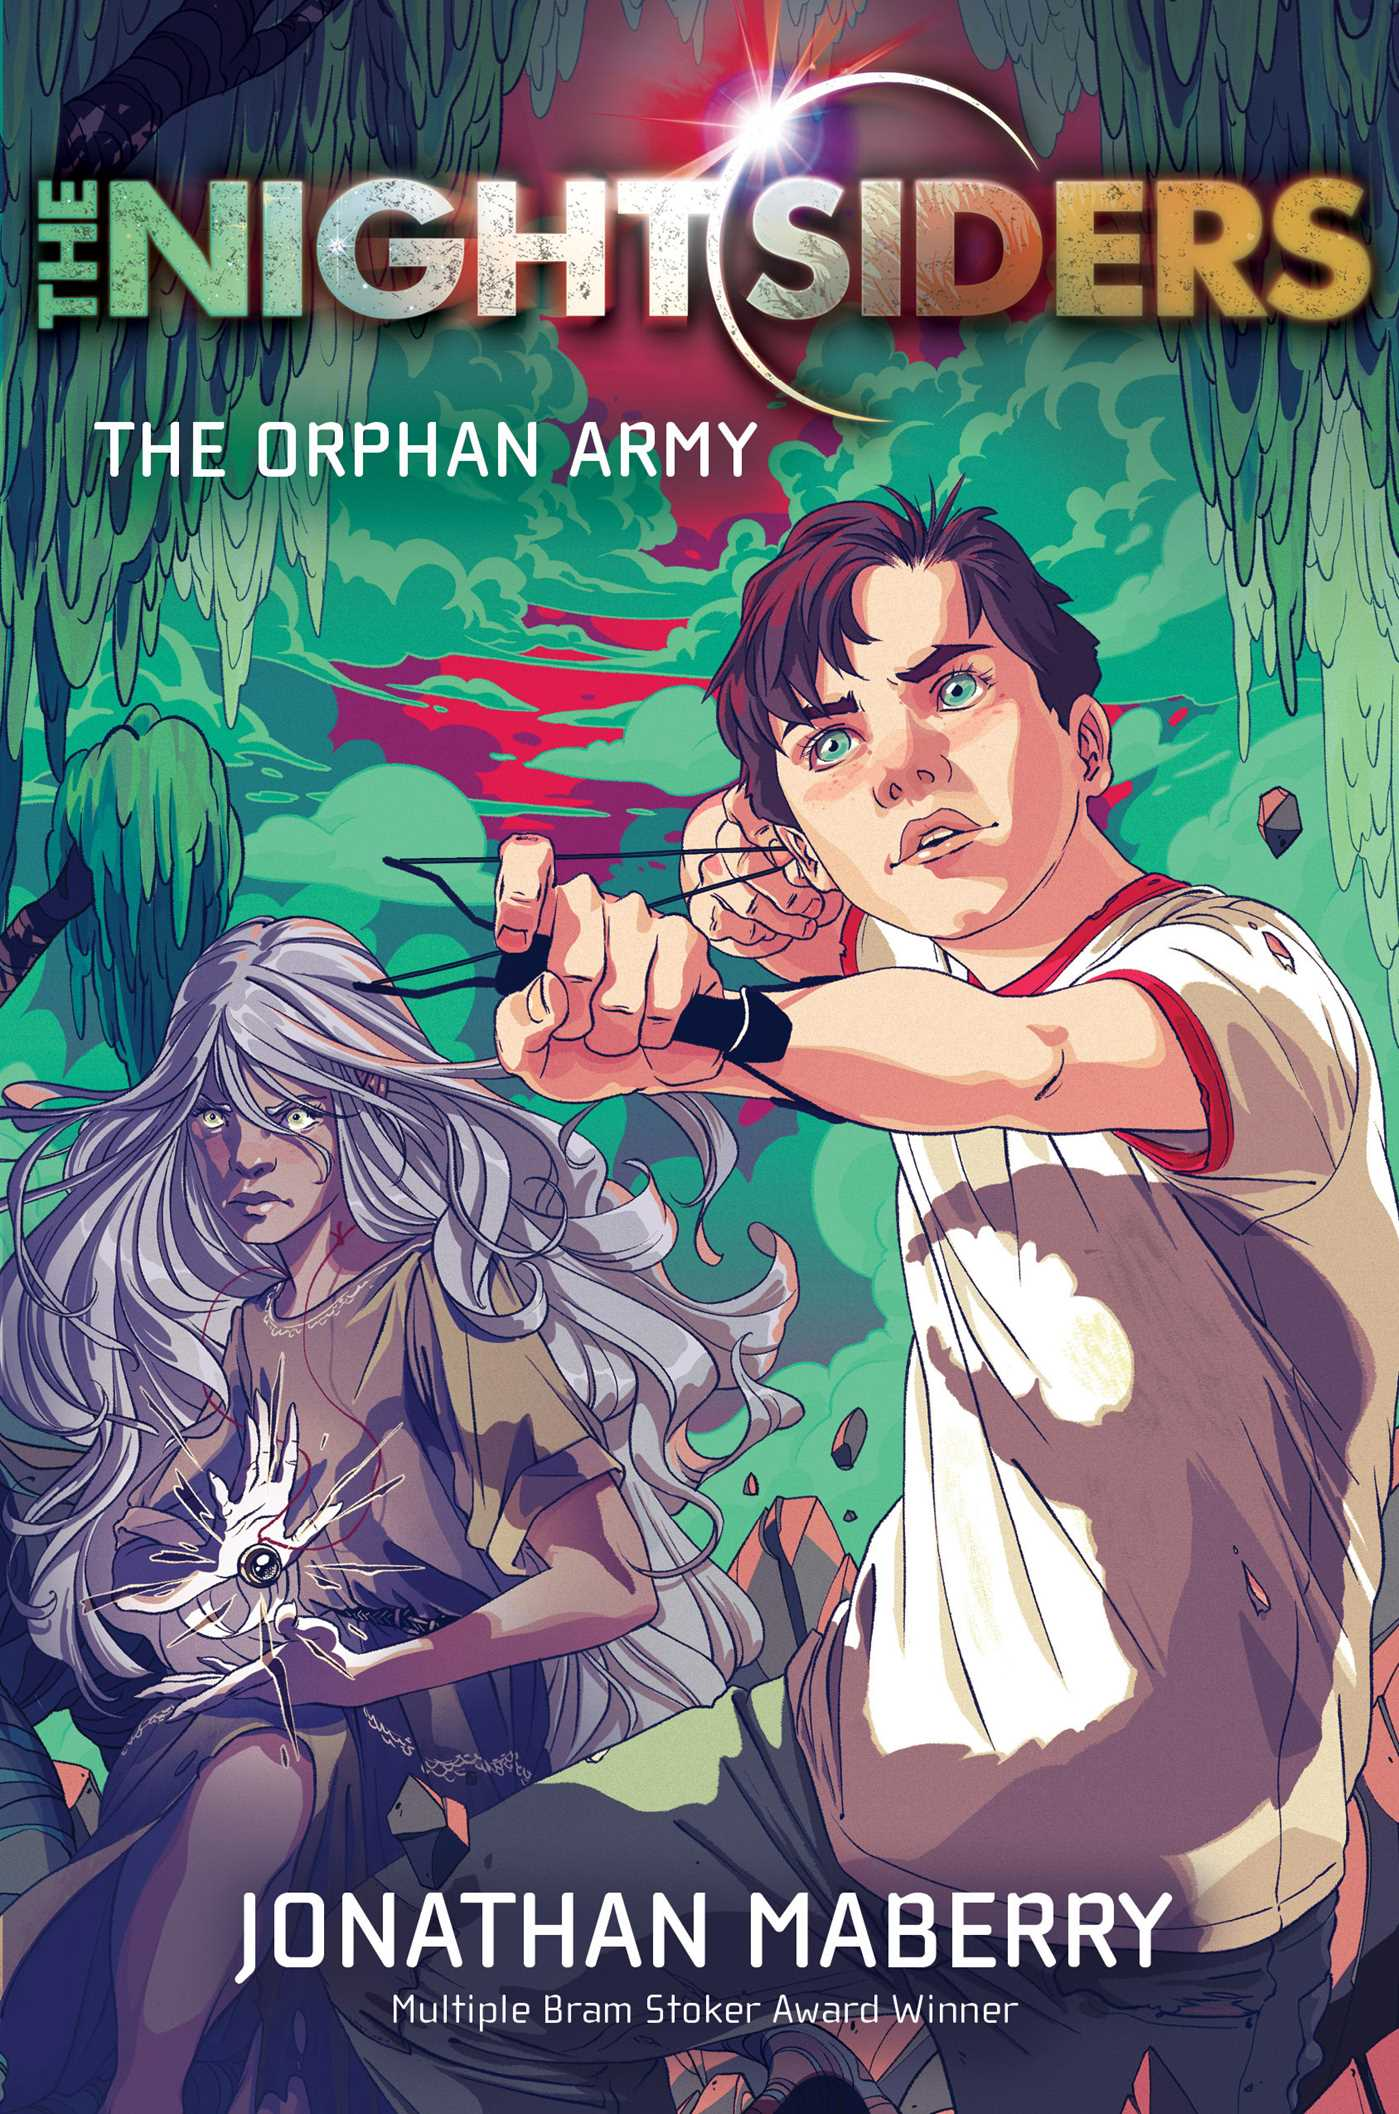 The-orphan-army-9781481415750_hr